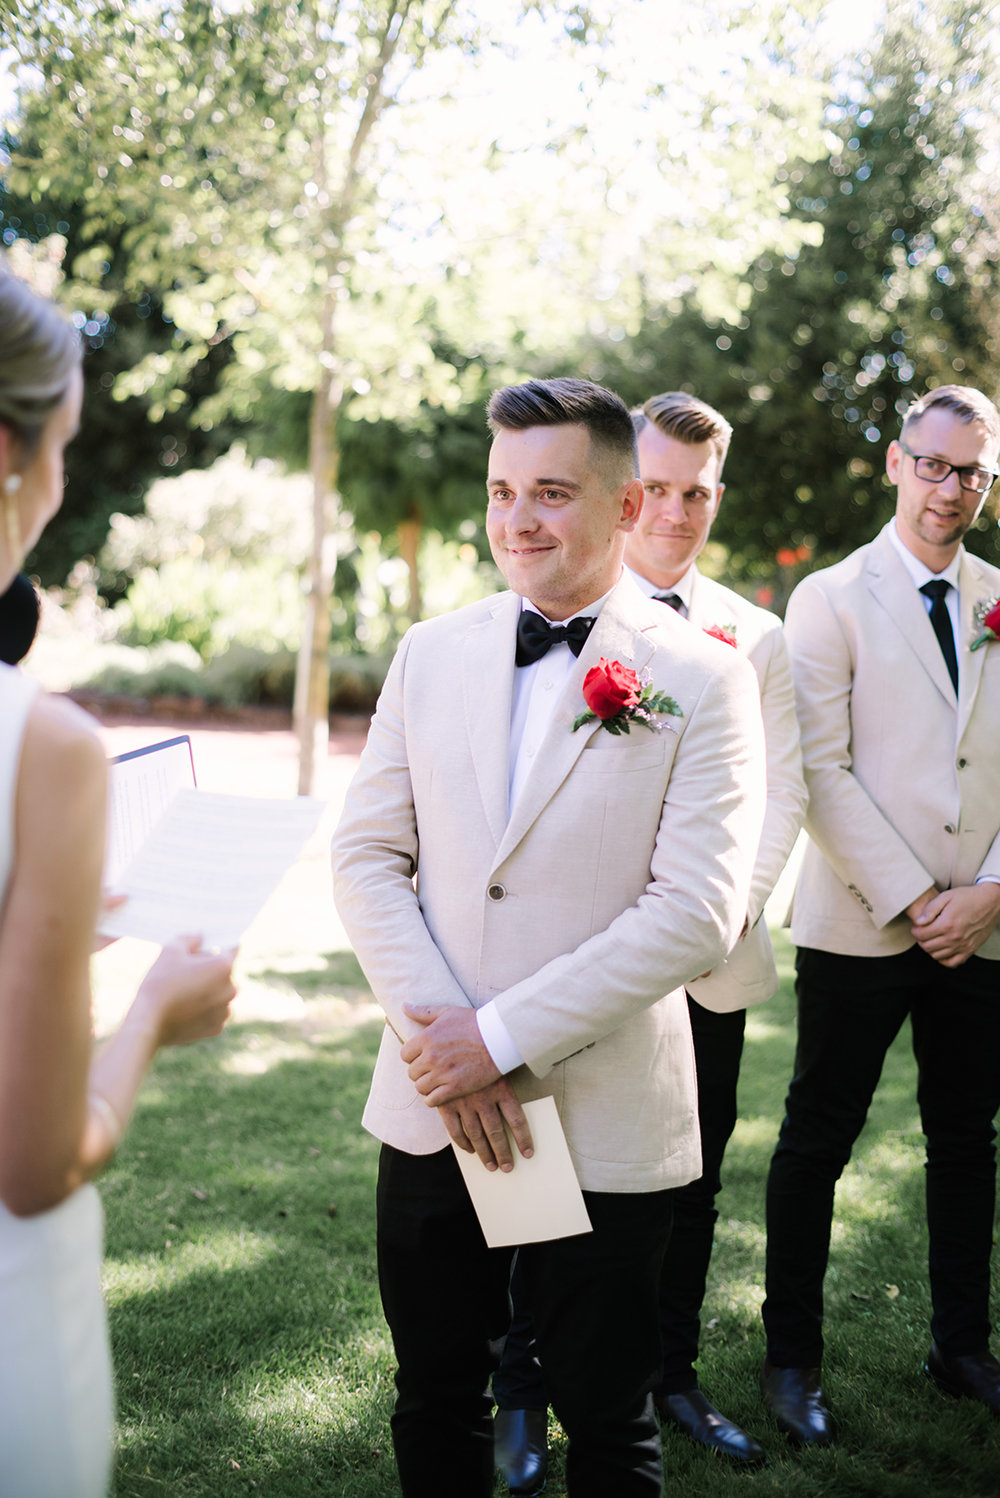 I_Got_You_Babe_Co._Megan_Andrew_Country_Property_Wedding_Victoria0040.JPG